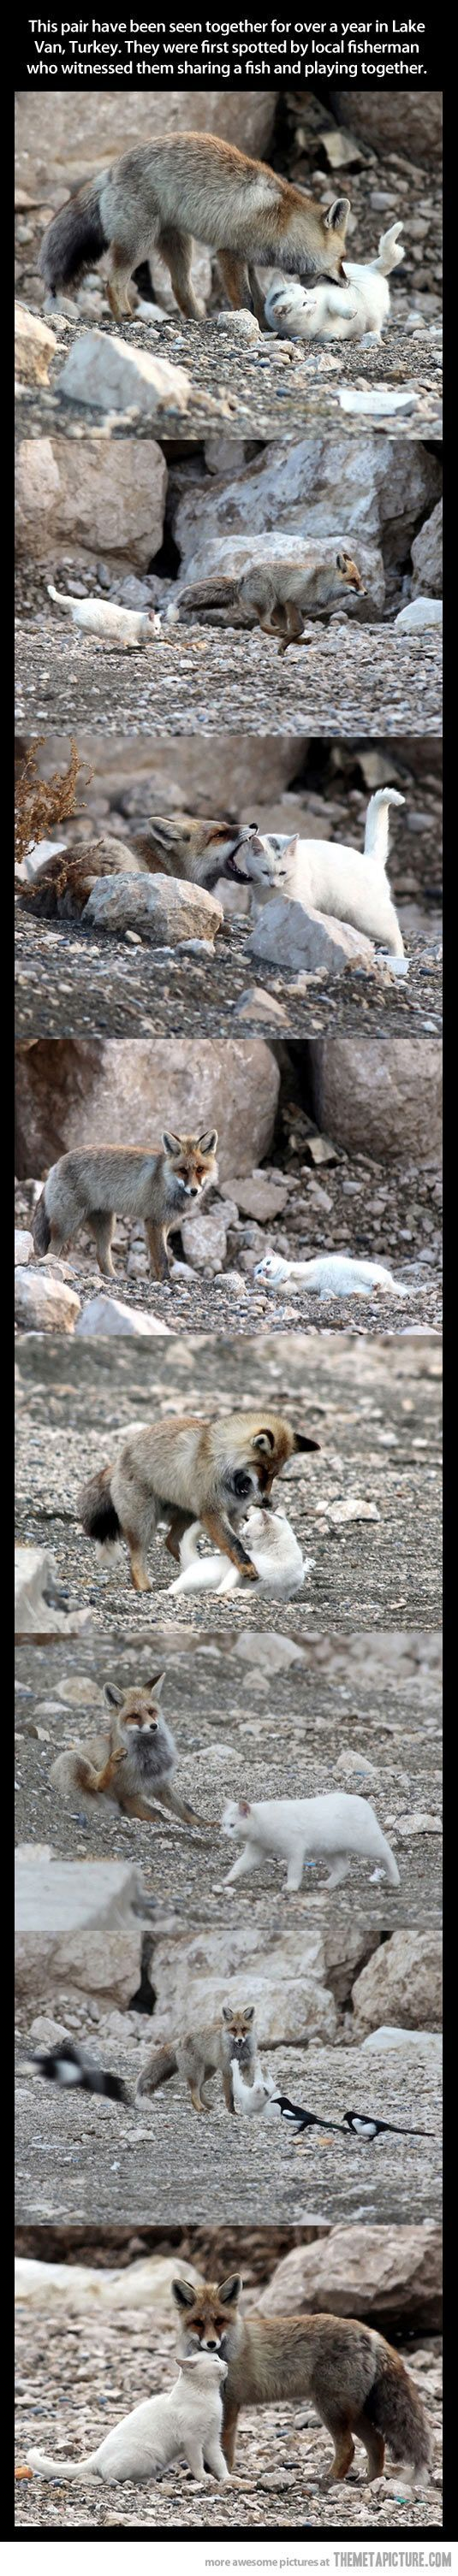 Wild cat and fox are best friends